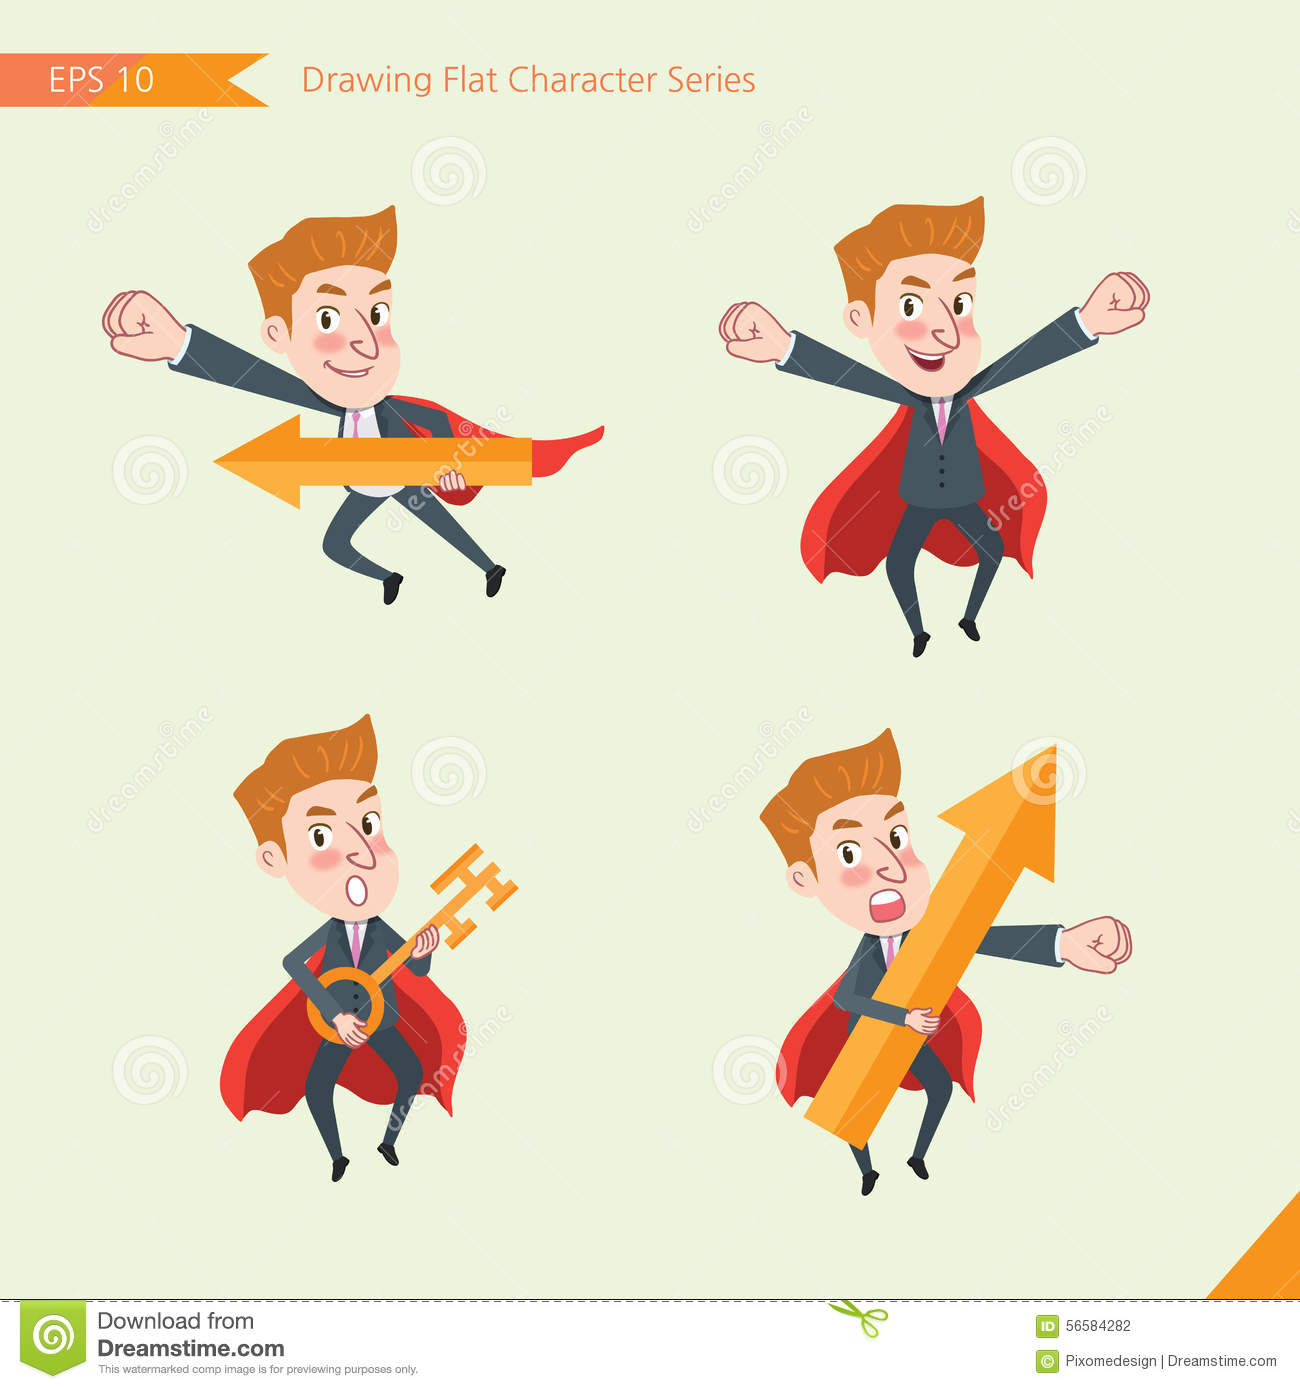 Set of drawing flat character style, business concept young office worker activities